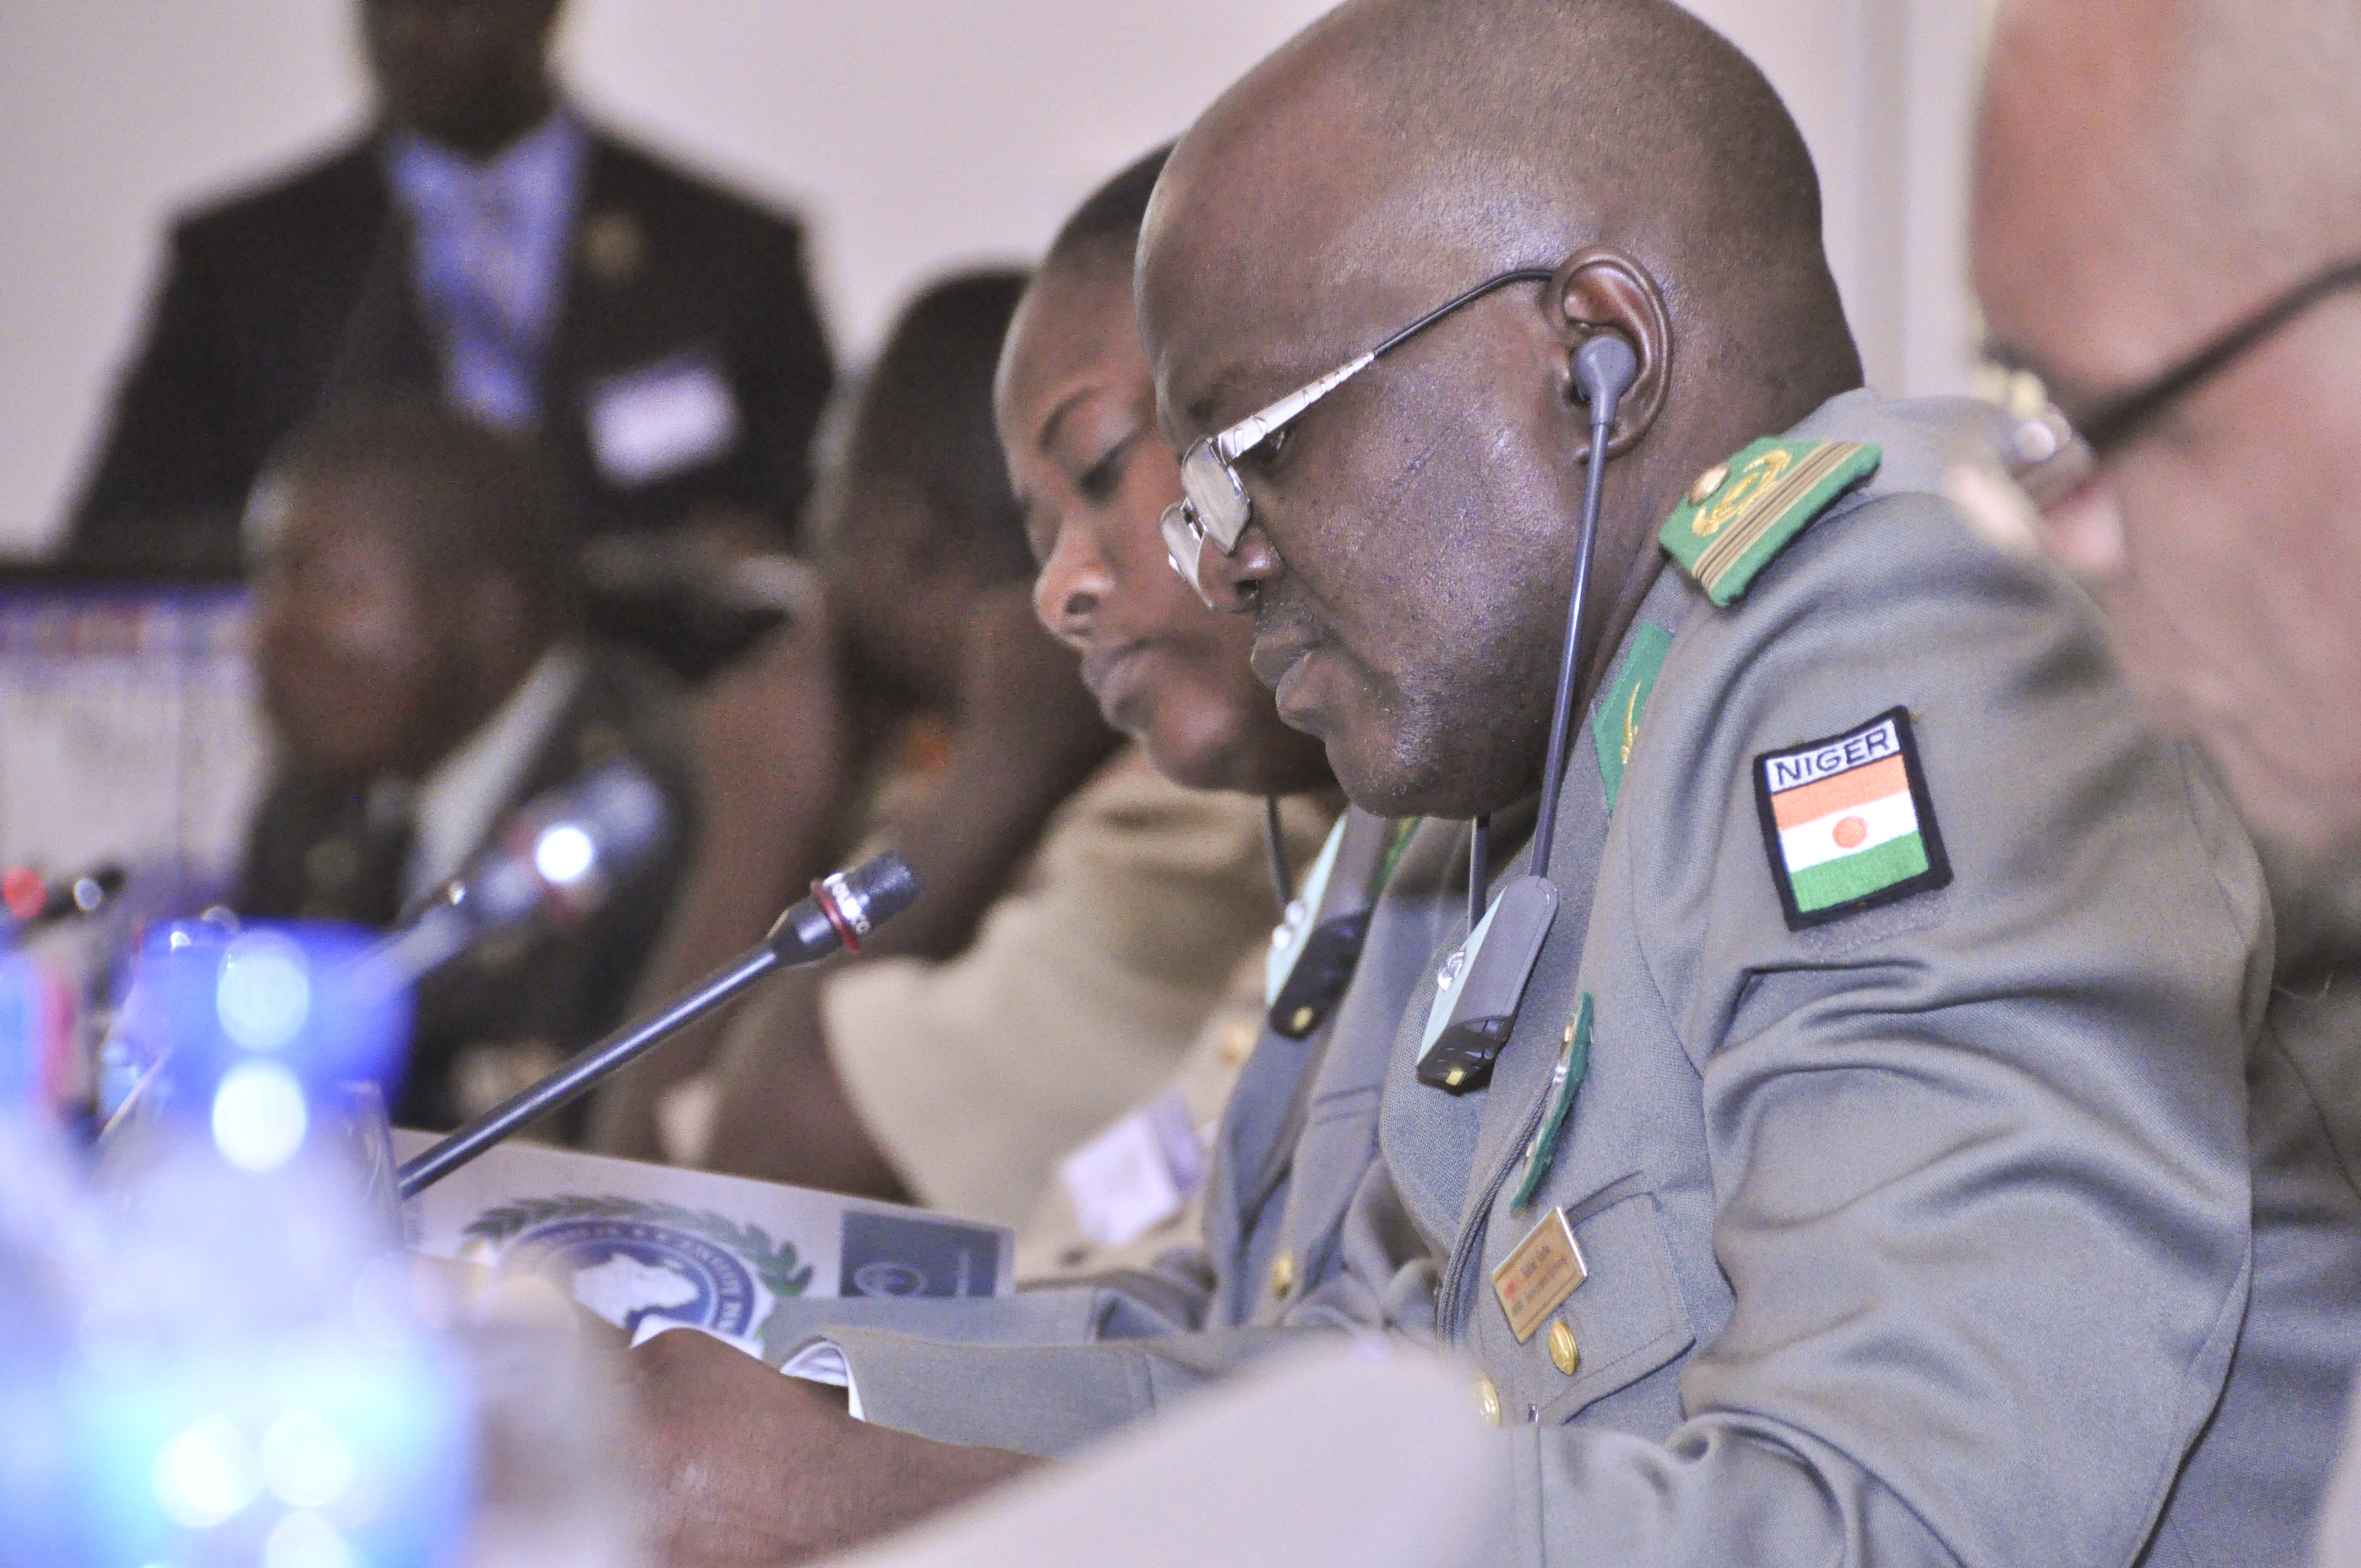 Participants take notes during the lesson-learned presentation by members of the Liberian Armed Forces during the first African Partner Outbreak Response Alliance meeting in Accra, Ghana, April 20, 2015.  More than 60 military and civilian doctors and medical practitioners from 12 African nations attended the meeting to discuss the capabilities of African partner nations to respond to a disease outbreak. (U.S. Africa Command photo by Tech. Sgt. Olufemi A Owolabi)